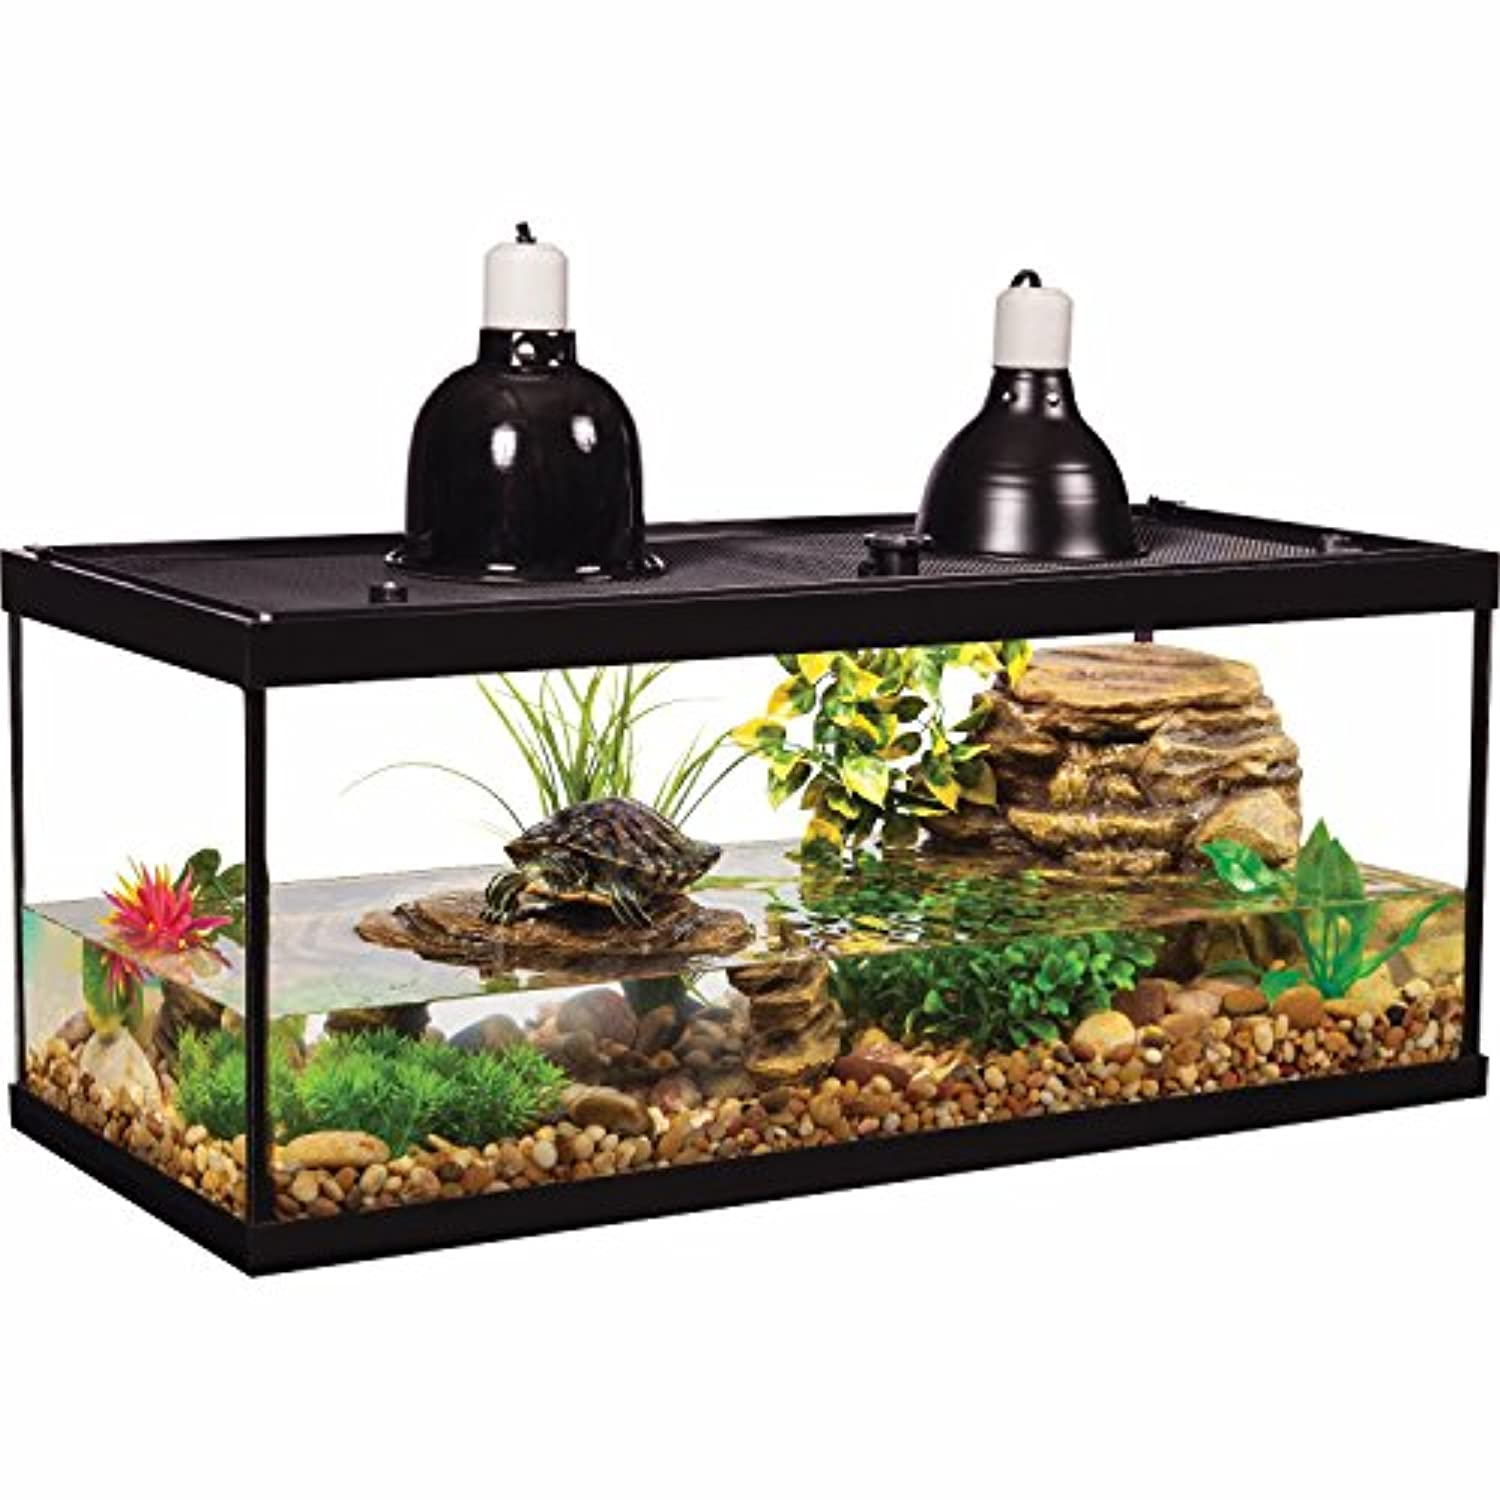 Classier: Buy Tetra Tetra Aquatic Turtle Deluxe Kit 20 Gallons, aquarium With Filter And Heating Lamps, 30 IN (NV33230)